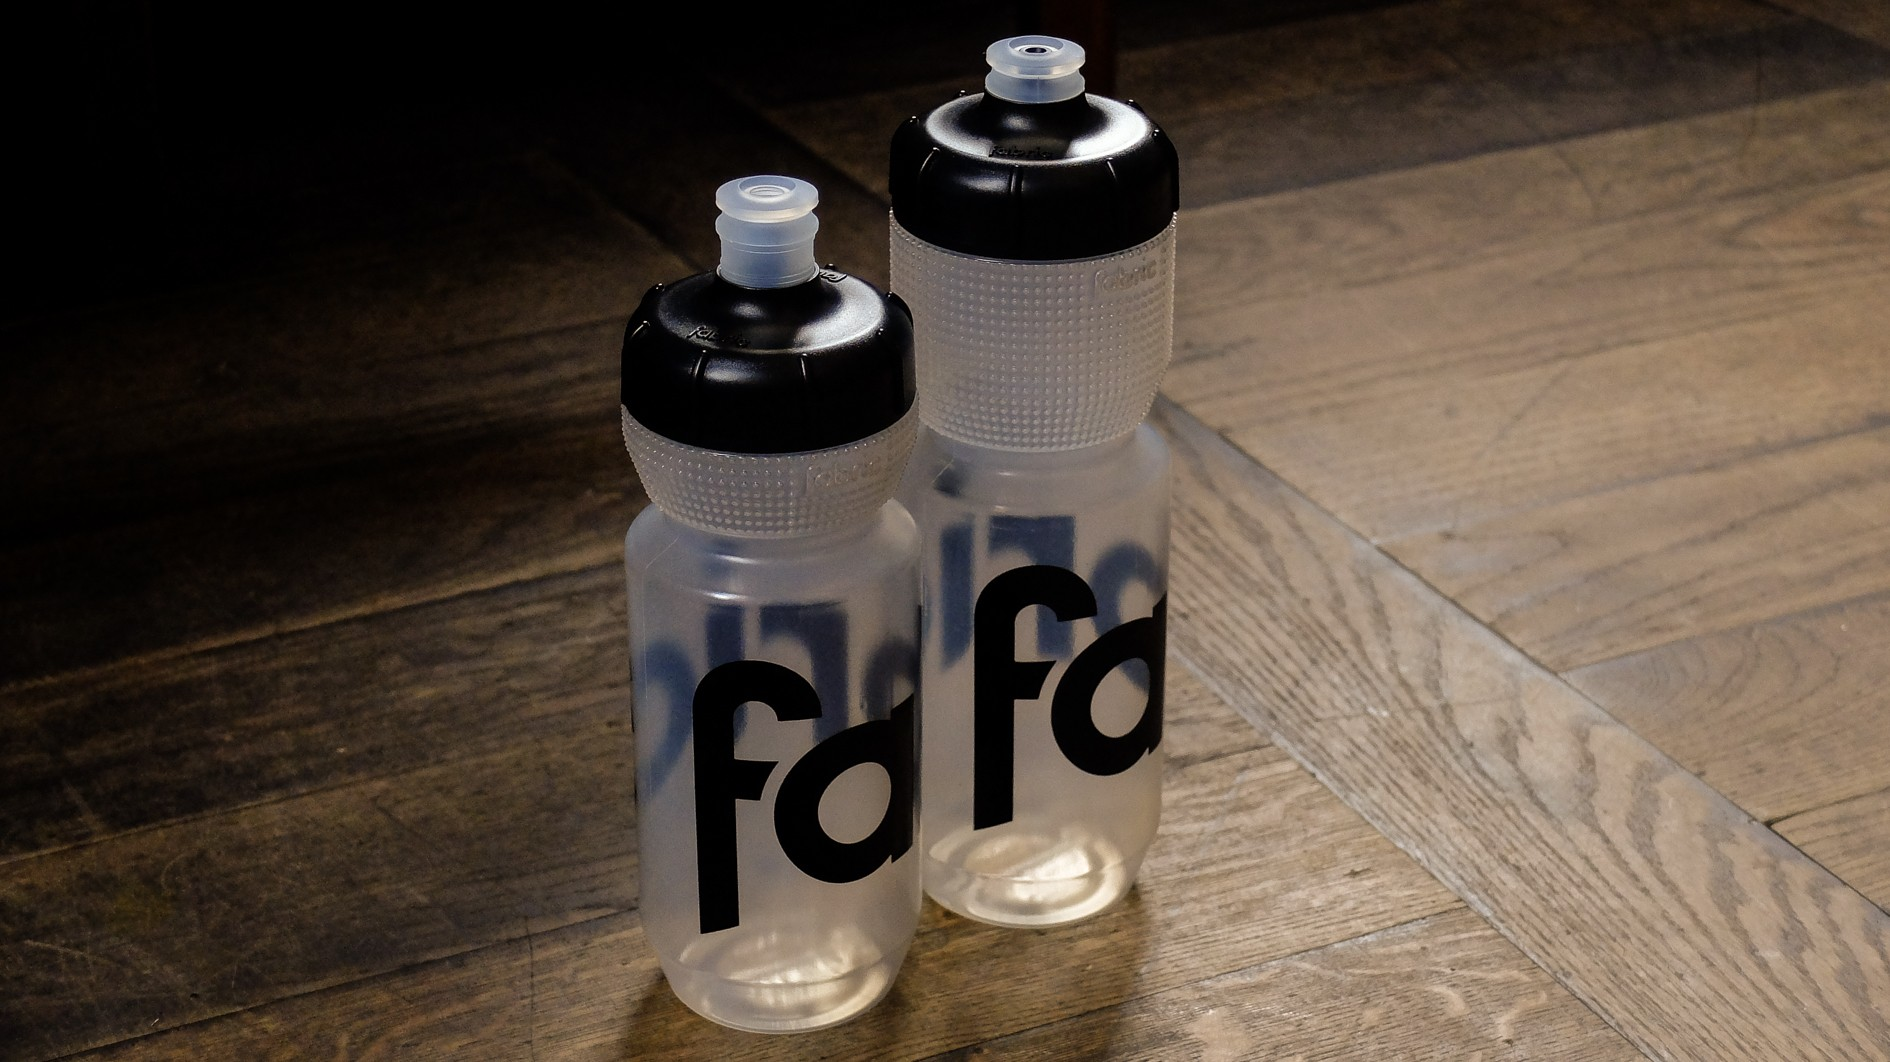 These cool new bottles see a super grippy area positioned just below the lid